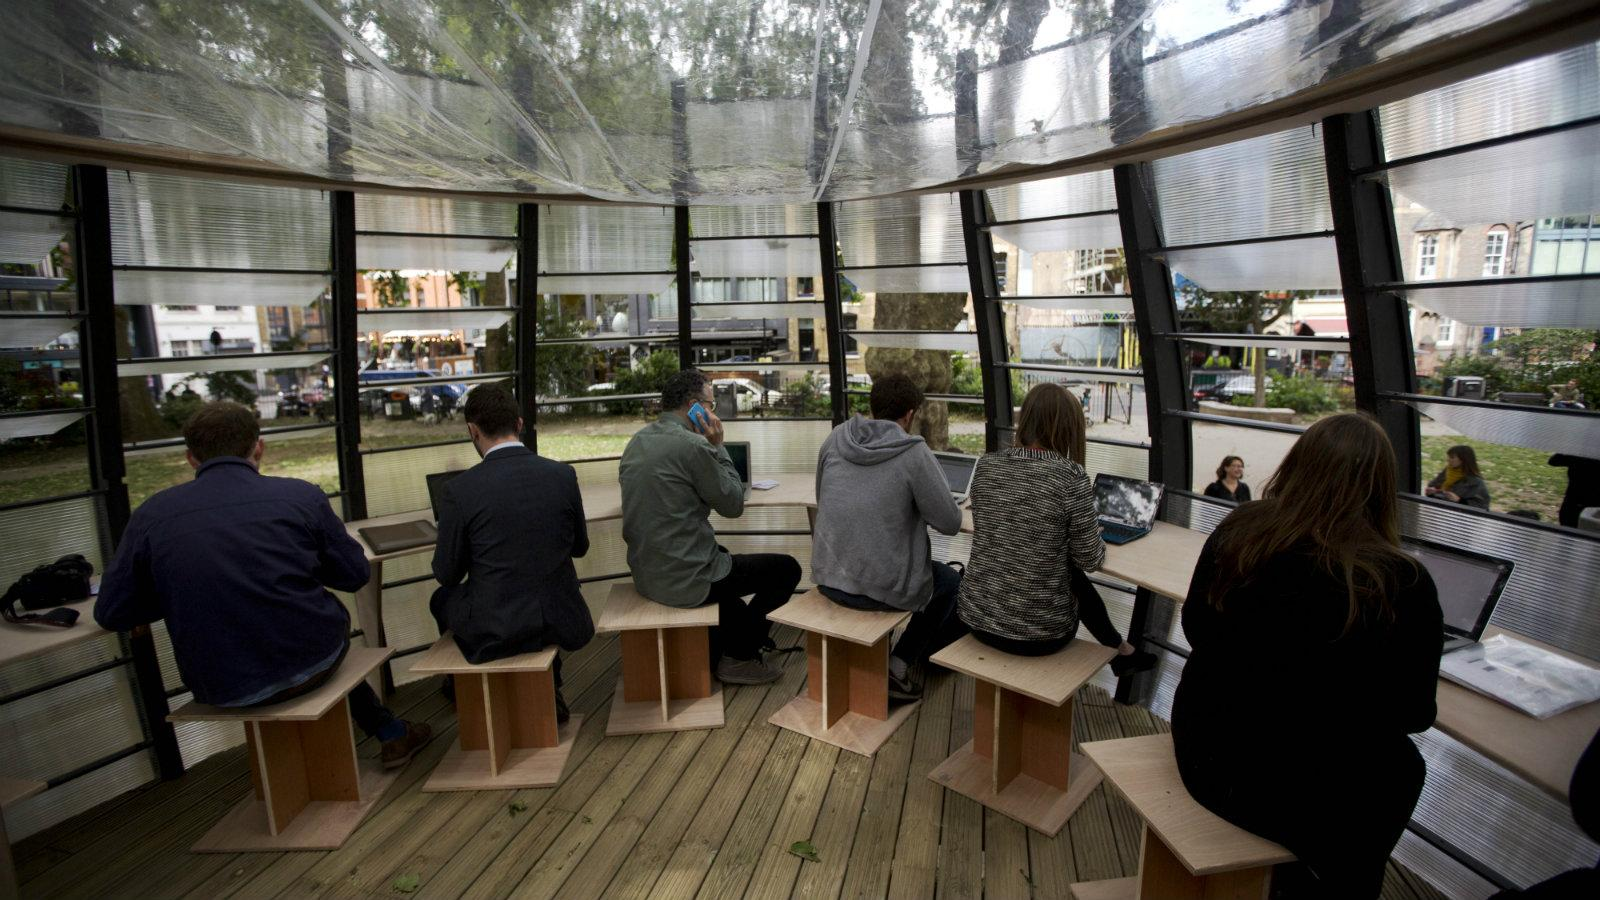 Find Coworking Spaces: Know your options